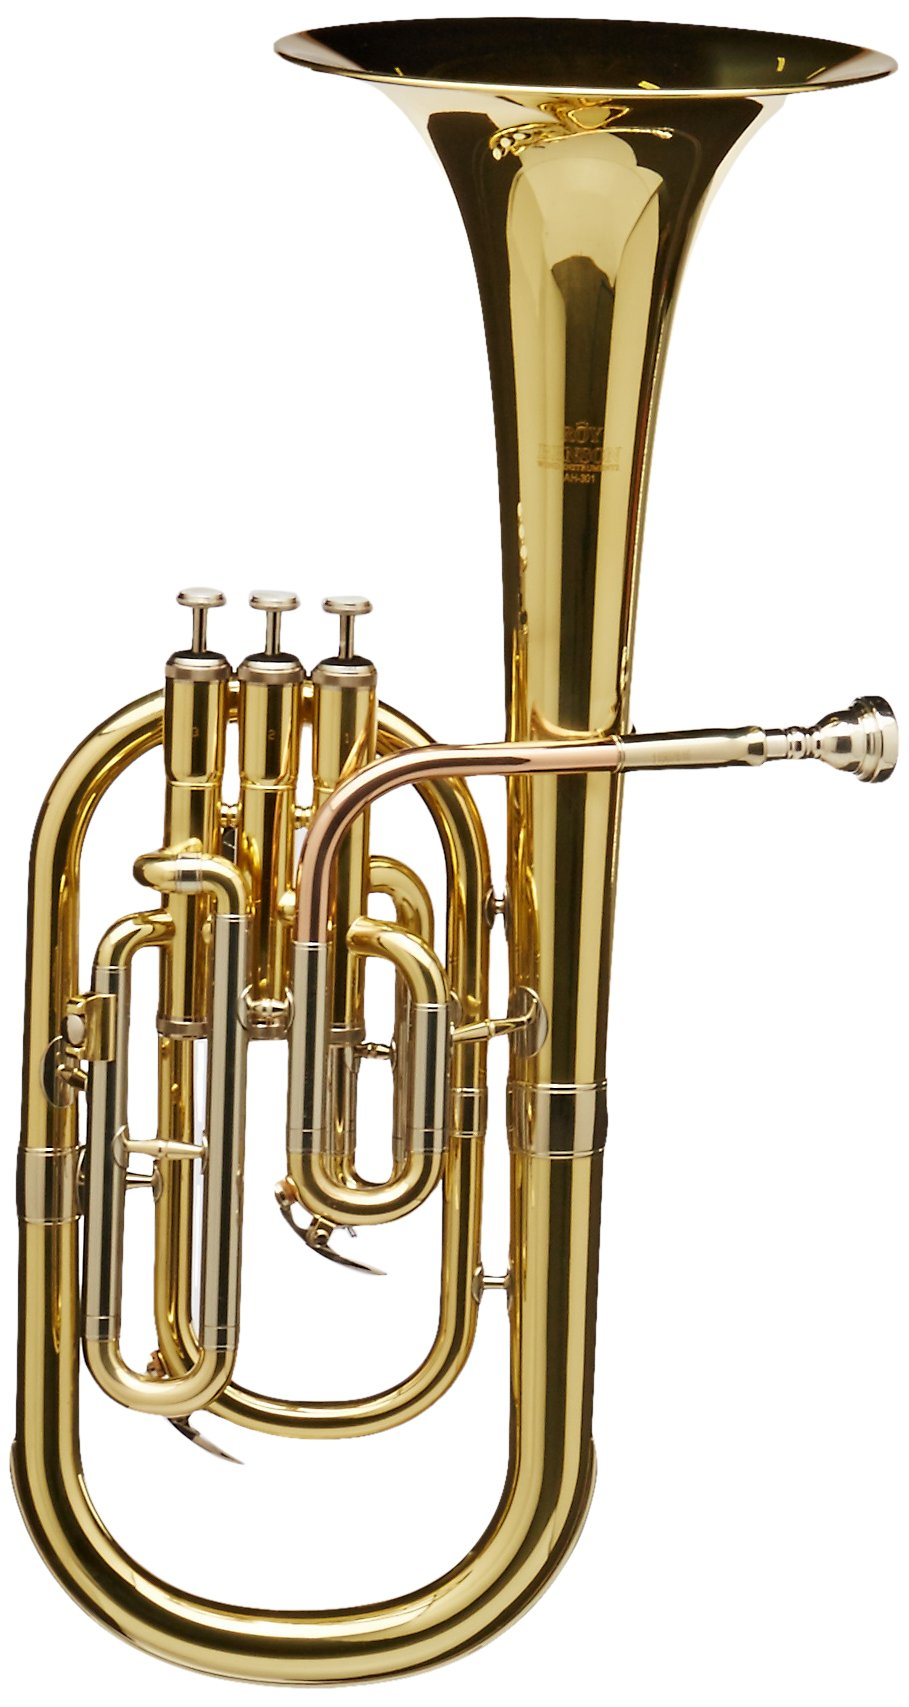 Roy Benson MOD.AH-301 EB Lacquered Finish Altohorn with Light Weight Form Shaped Case